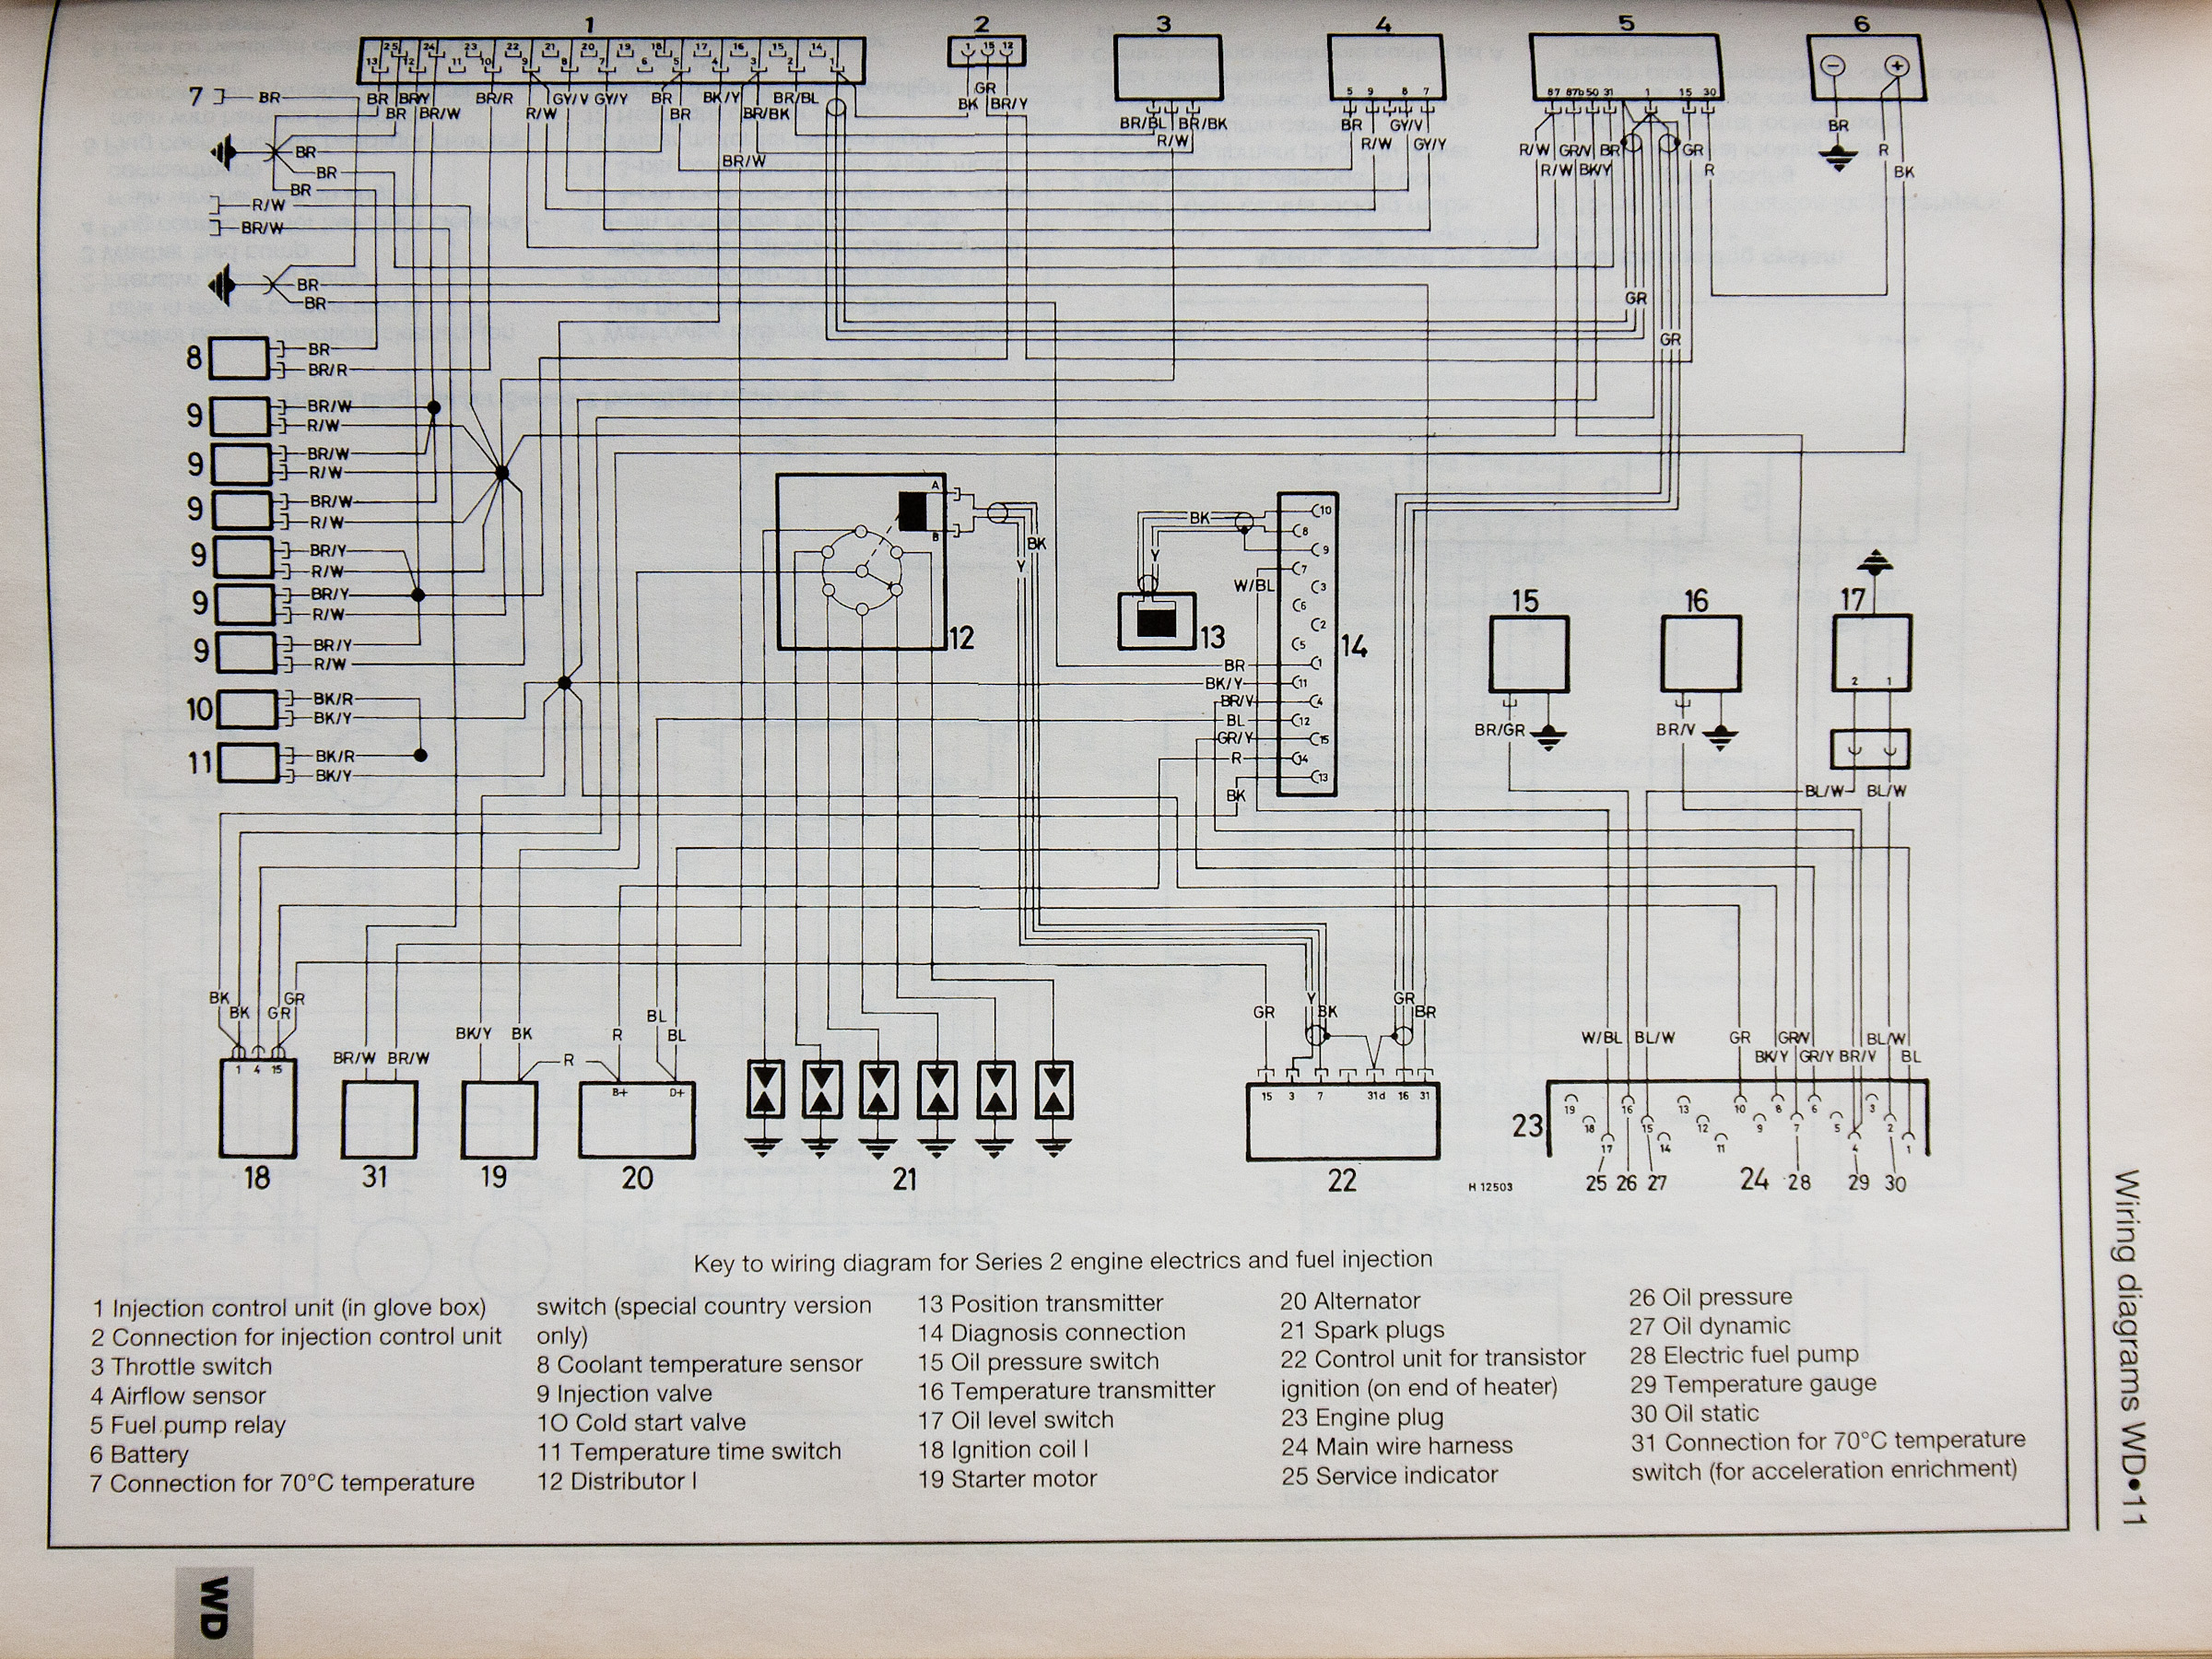 1988 Bmw E30 Wiring Diagrams S52 Diagram